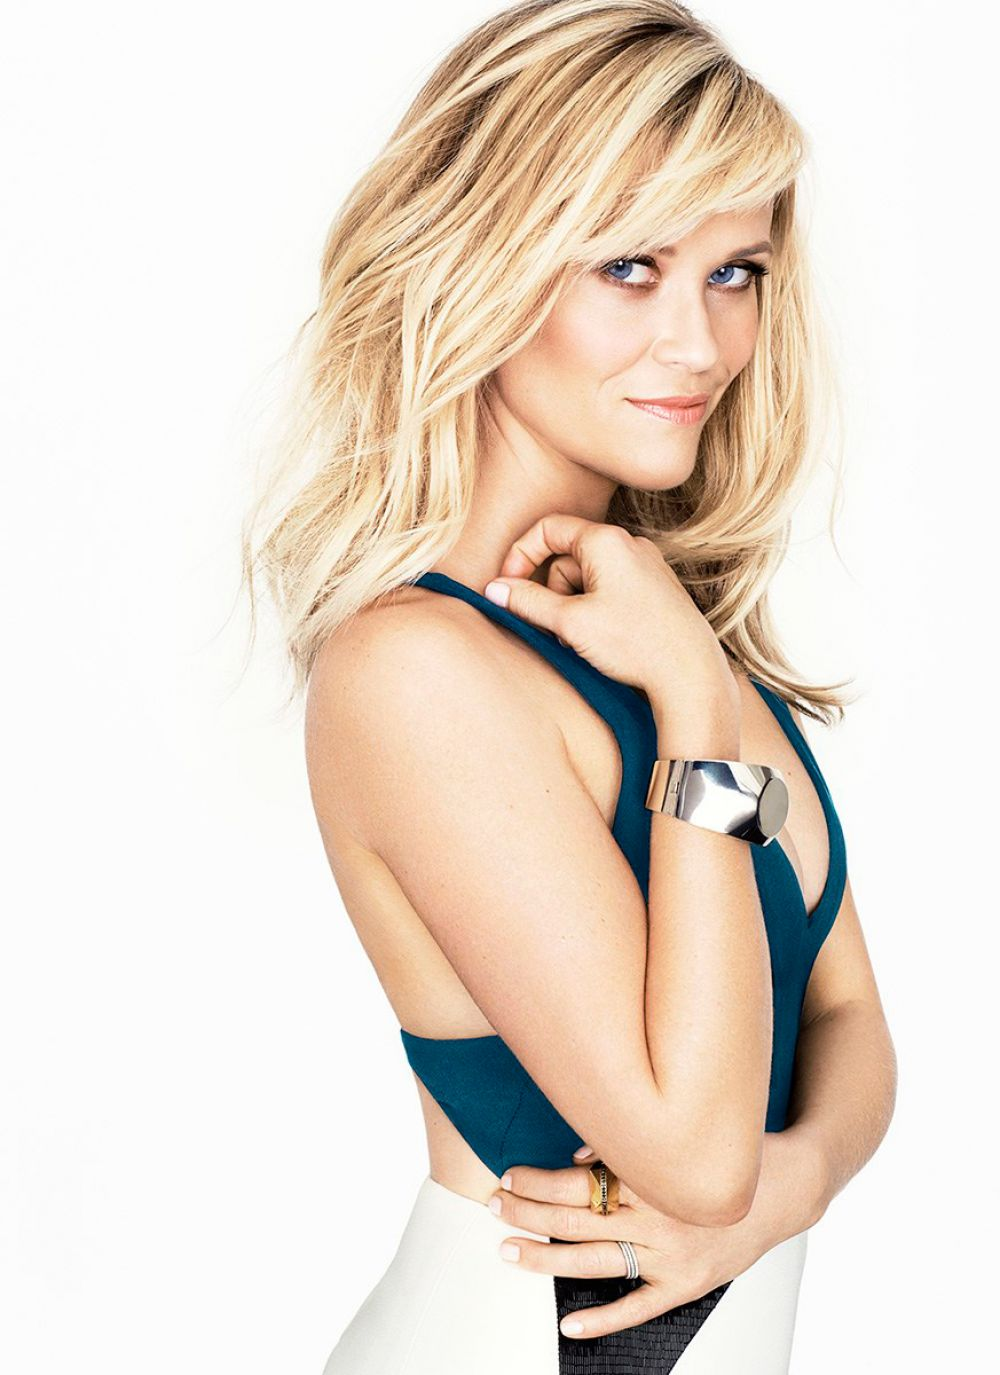 Reese Witherspoon In Glamour Magazine January 2015 Issue